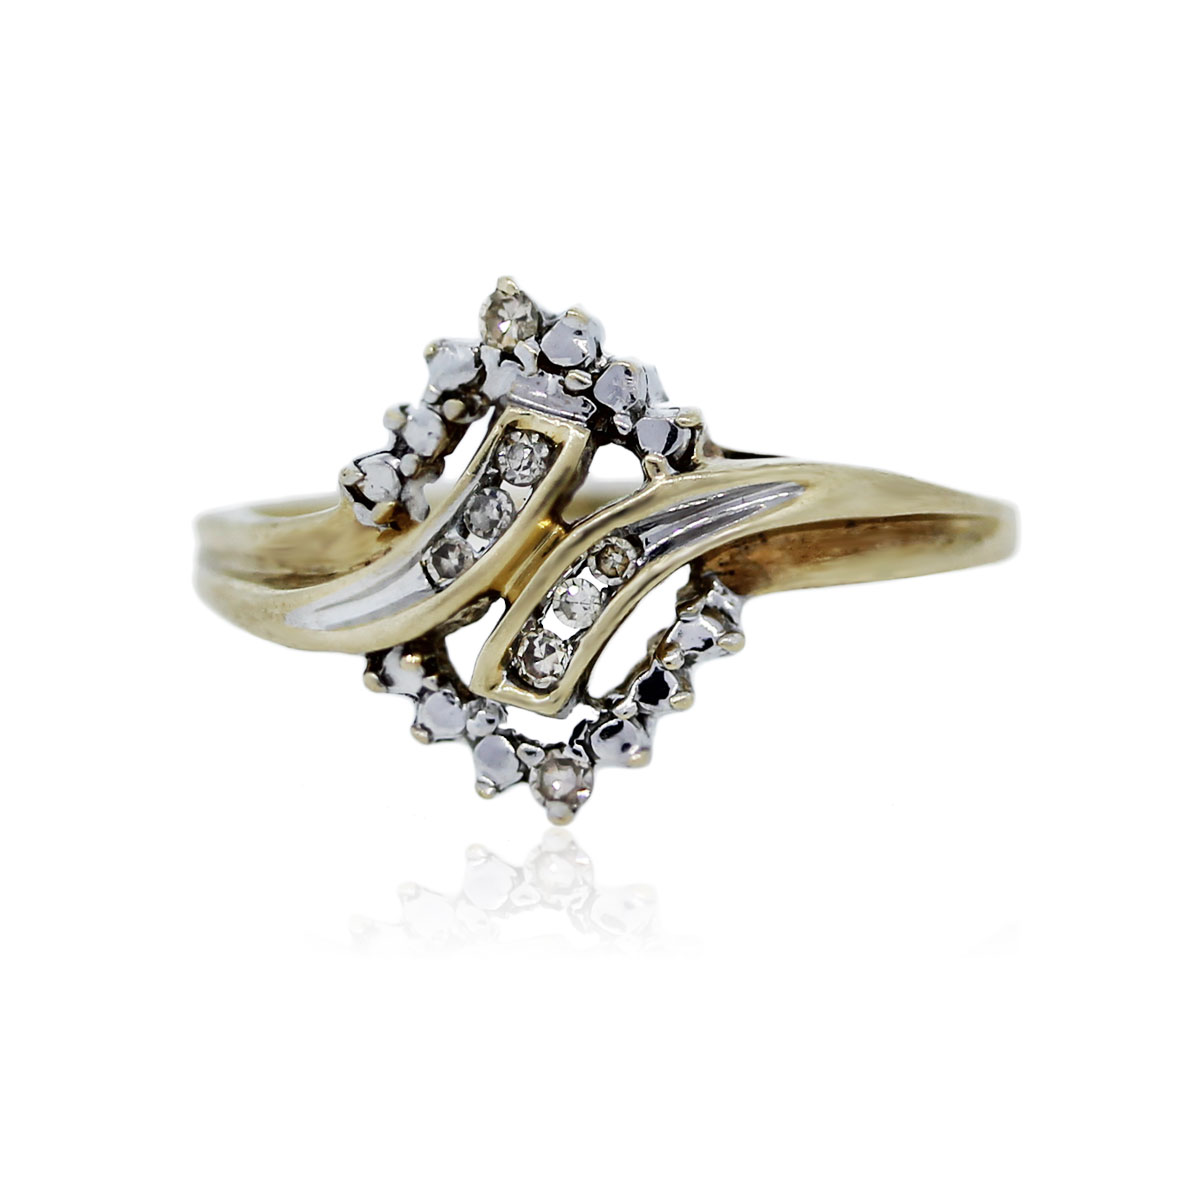 You are viewing this 10K Yellow Gold Single Cut Diamond Ring!